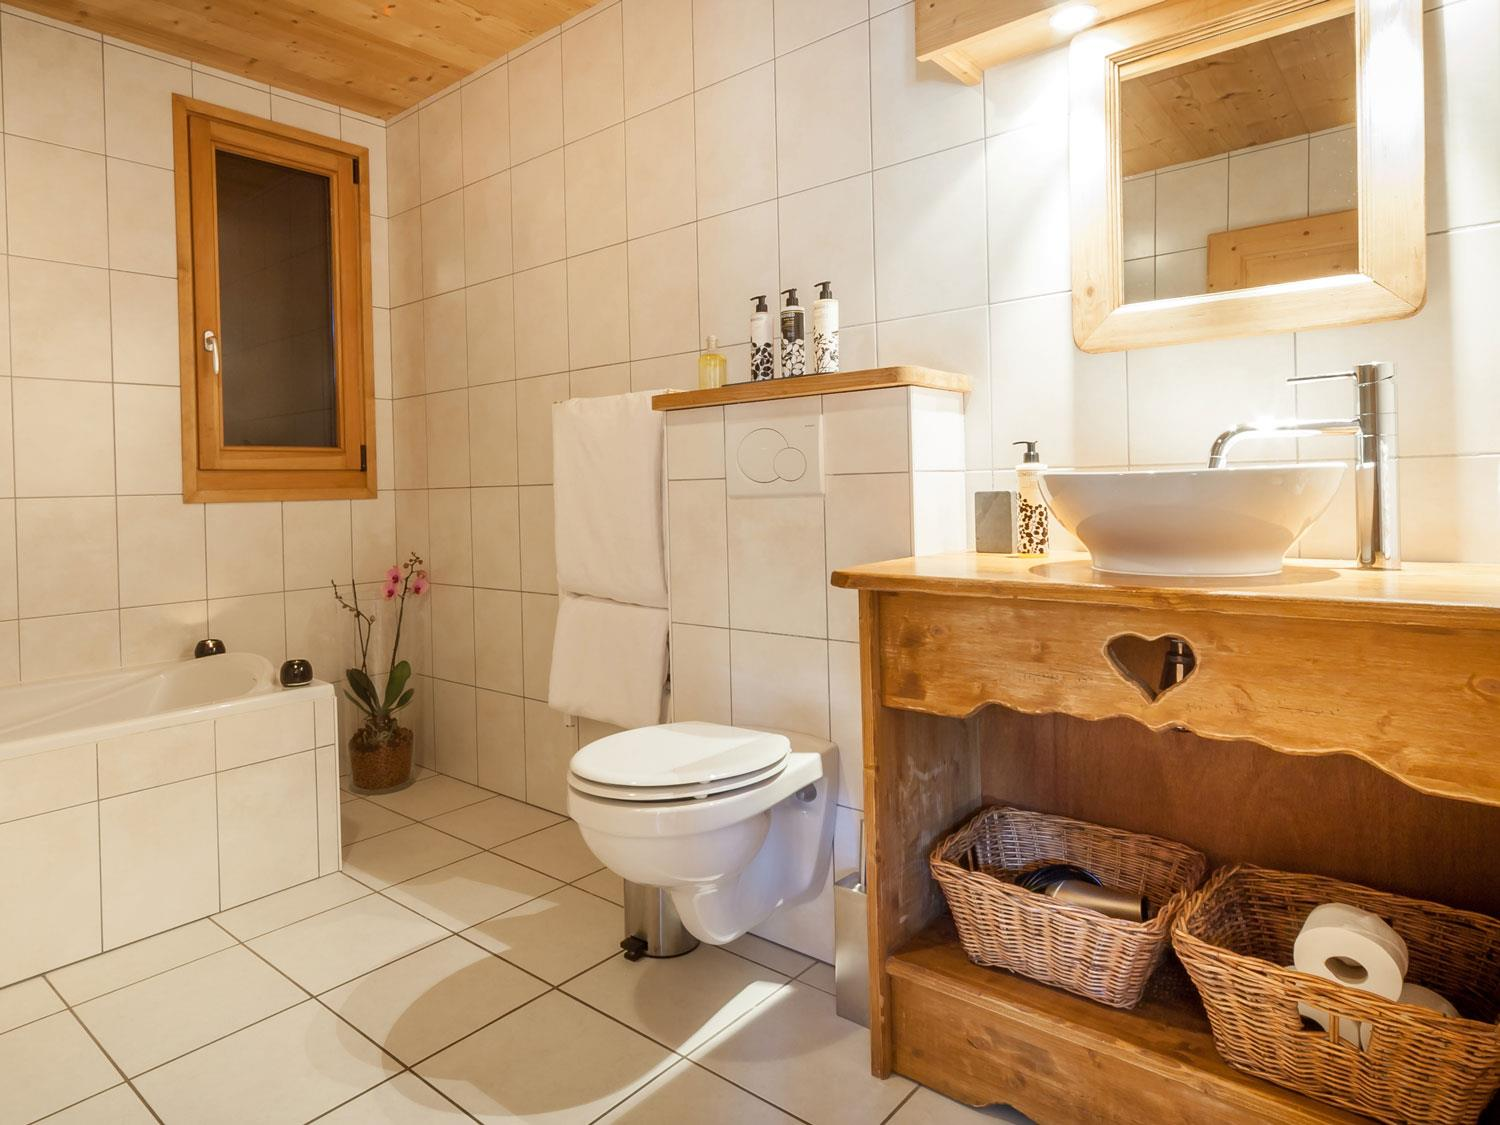 La Ferme D Elise - Bathroom/WC